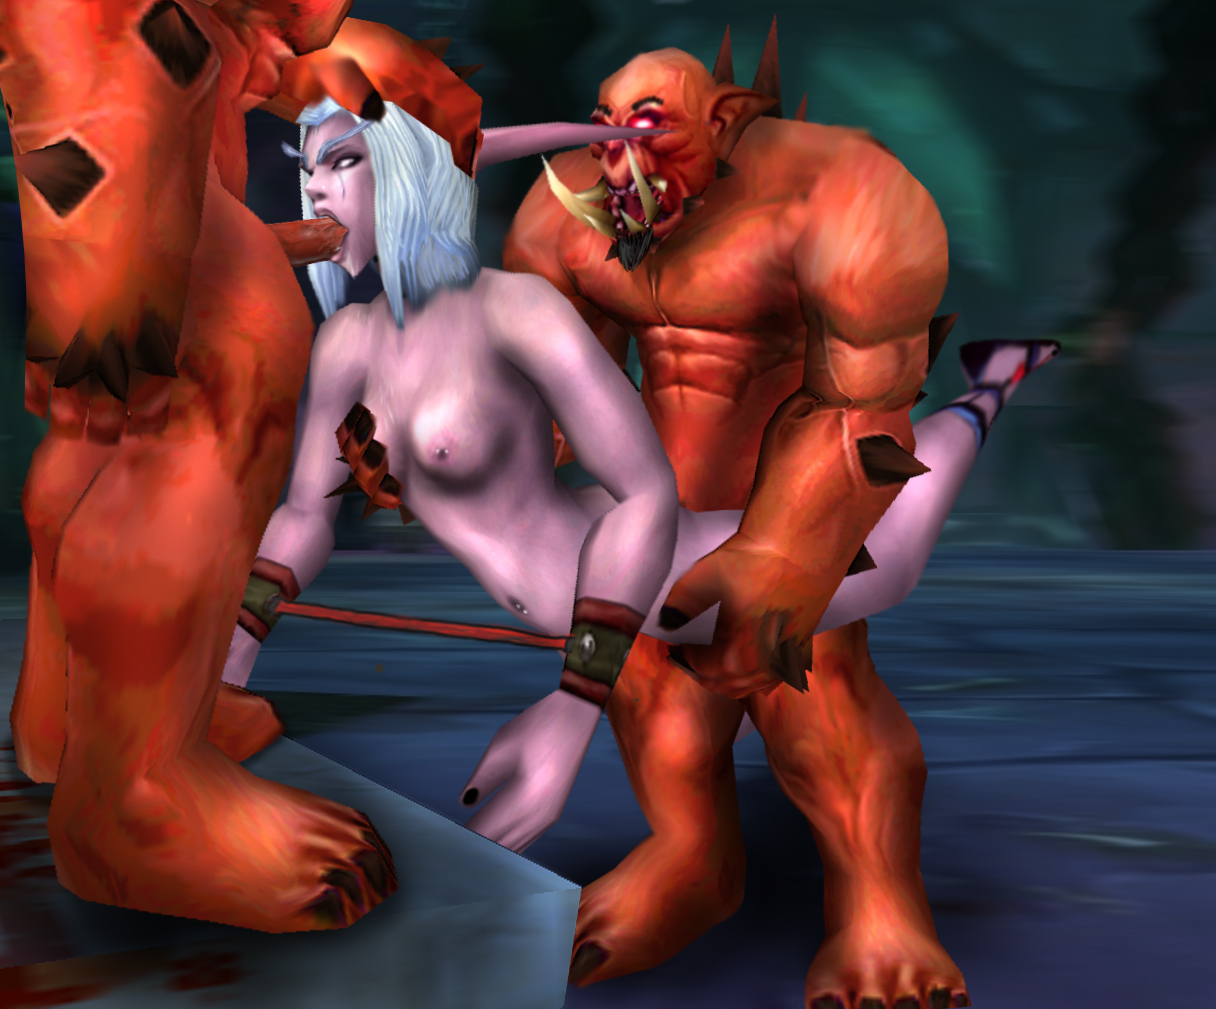 Warcraft 3 girls pron nsfw pictures